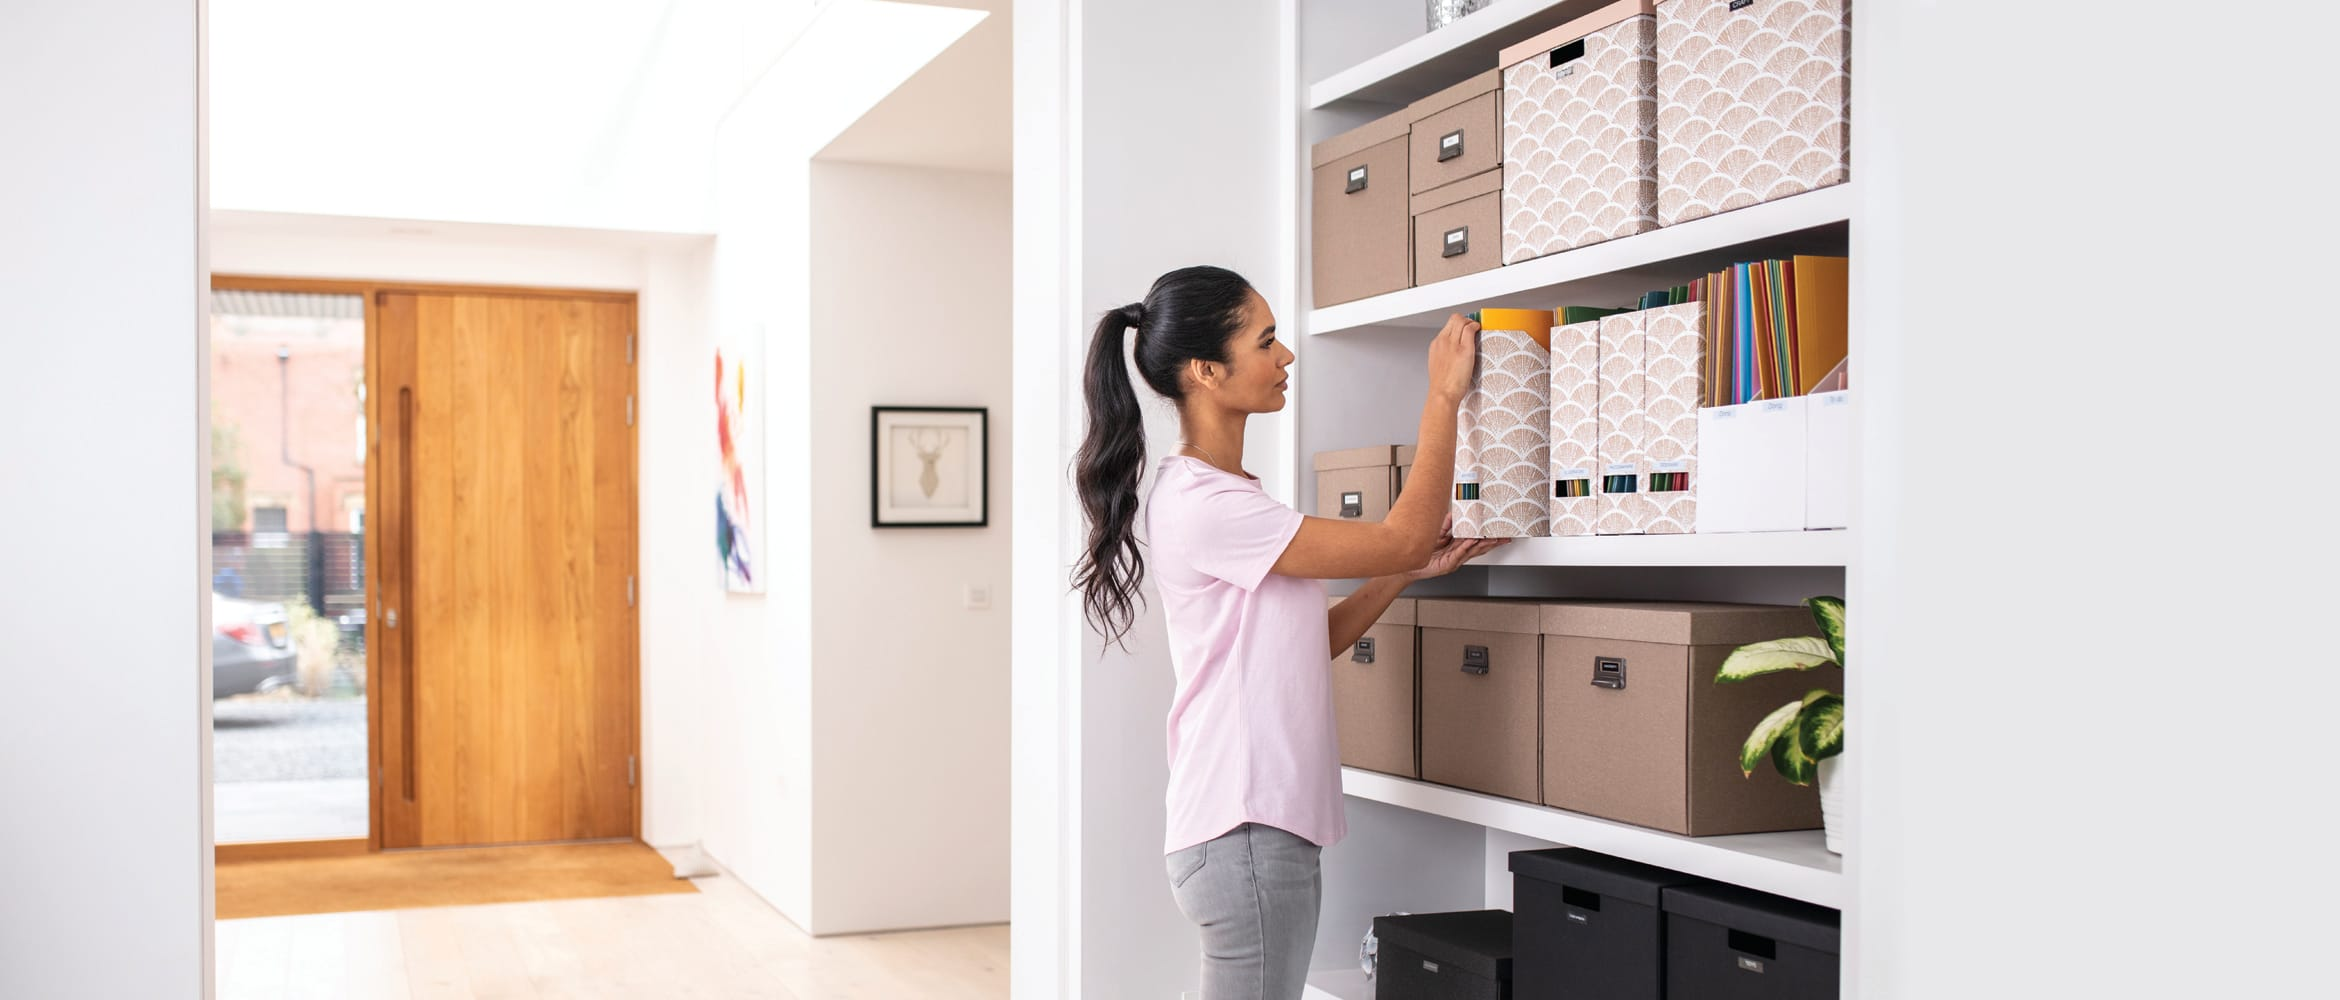 Woman putting a labelled file on a bookcase in a home office environment